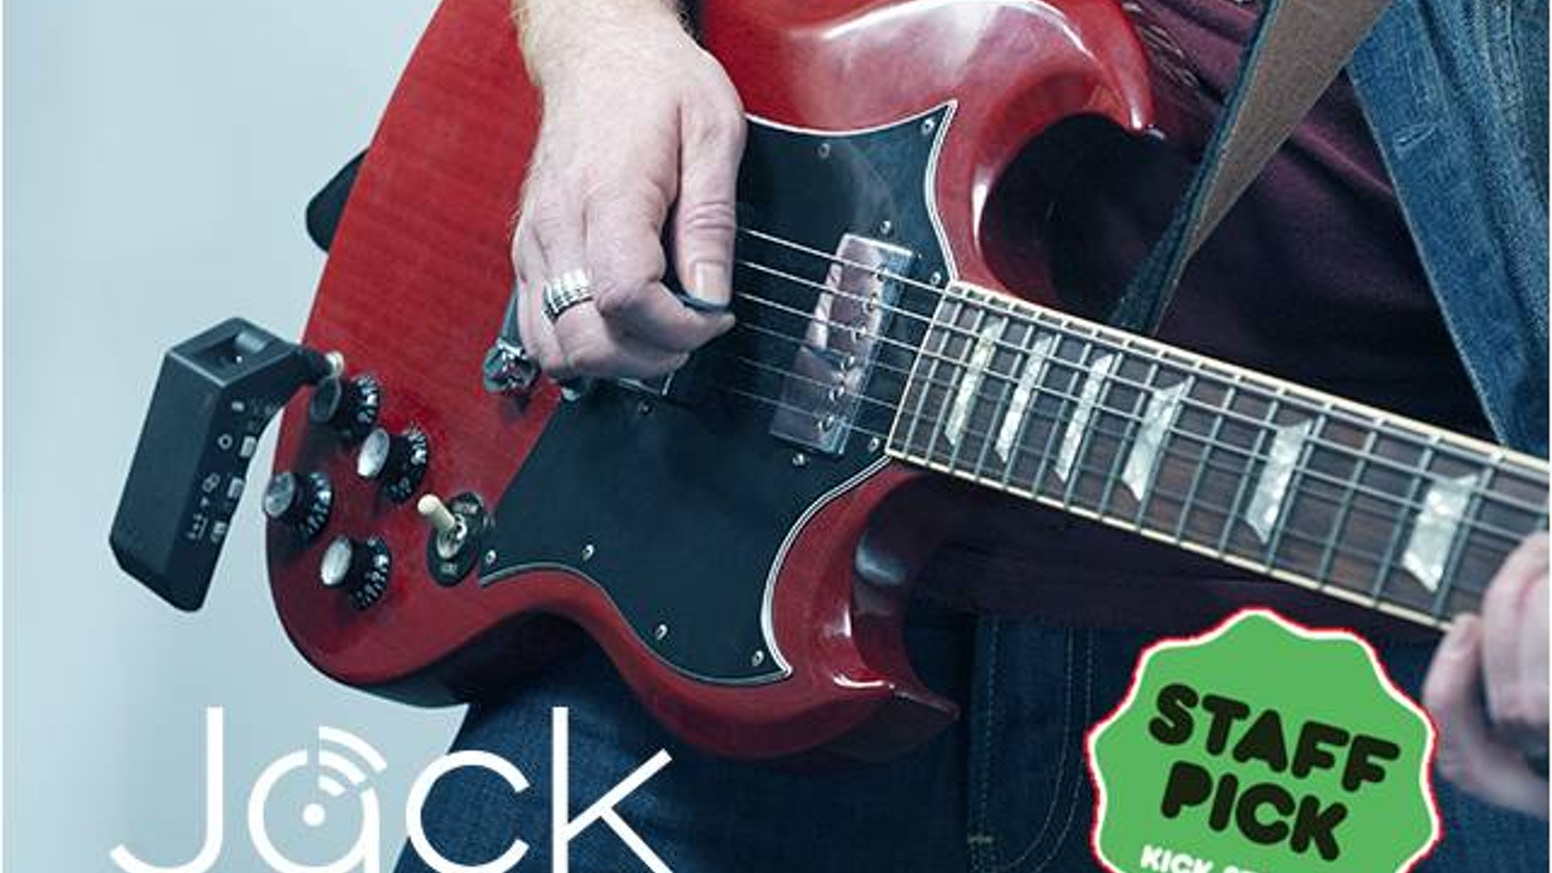 Jack is the first guitar device to stream over Wi-Fi, plug into any guitar  or amp to play wirelessly and connect to PC, Tablet or Phone